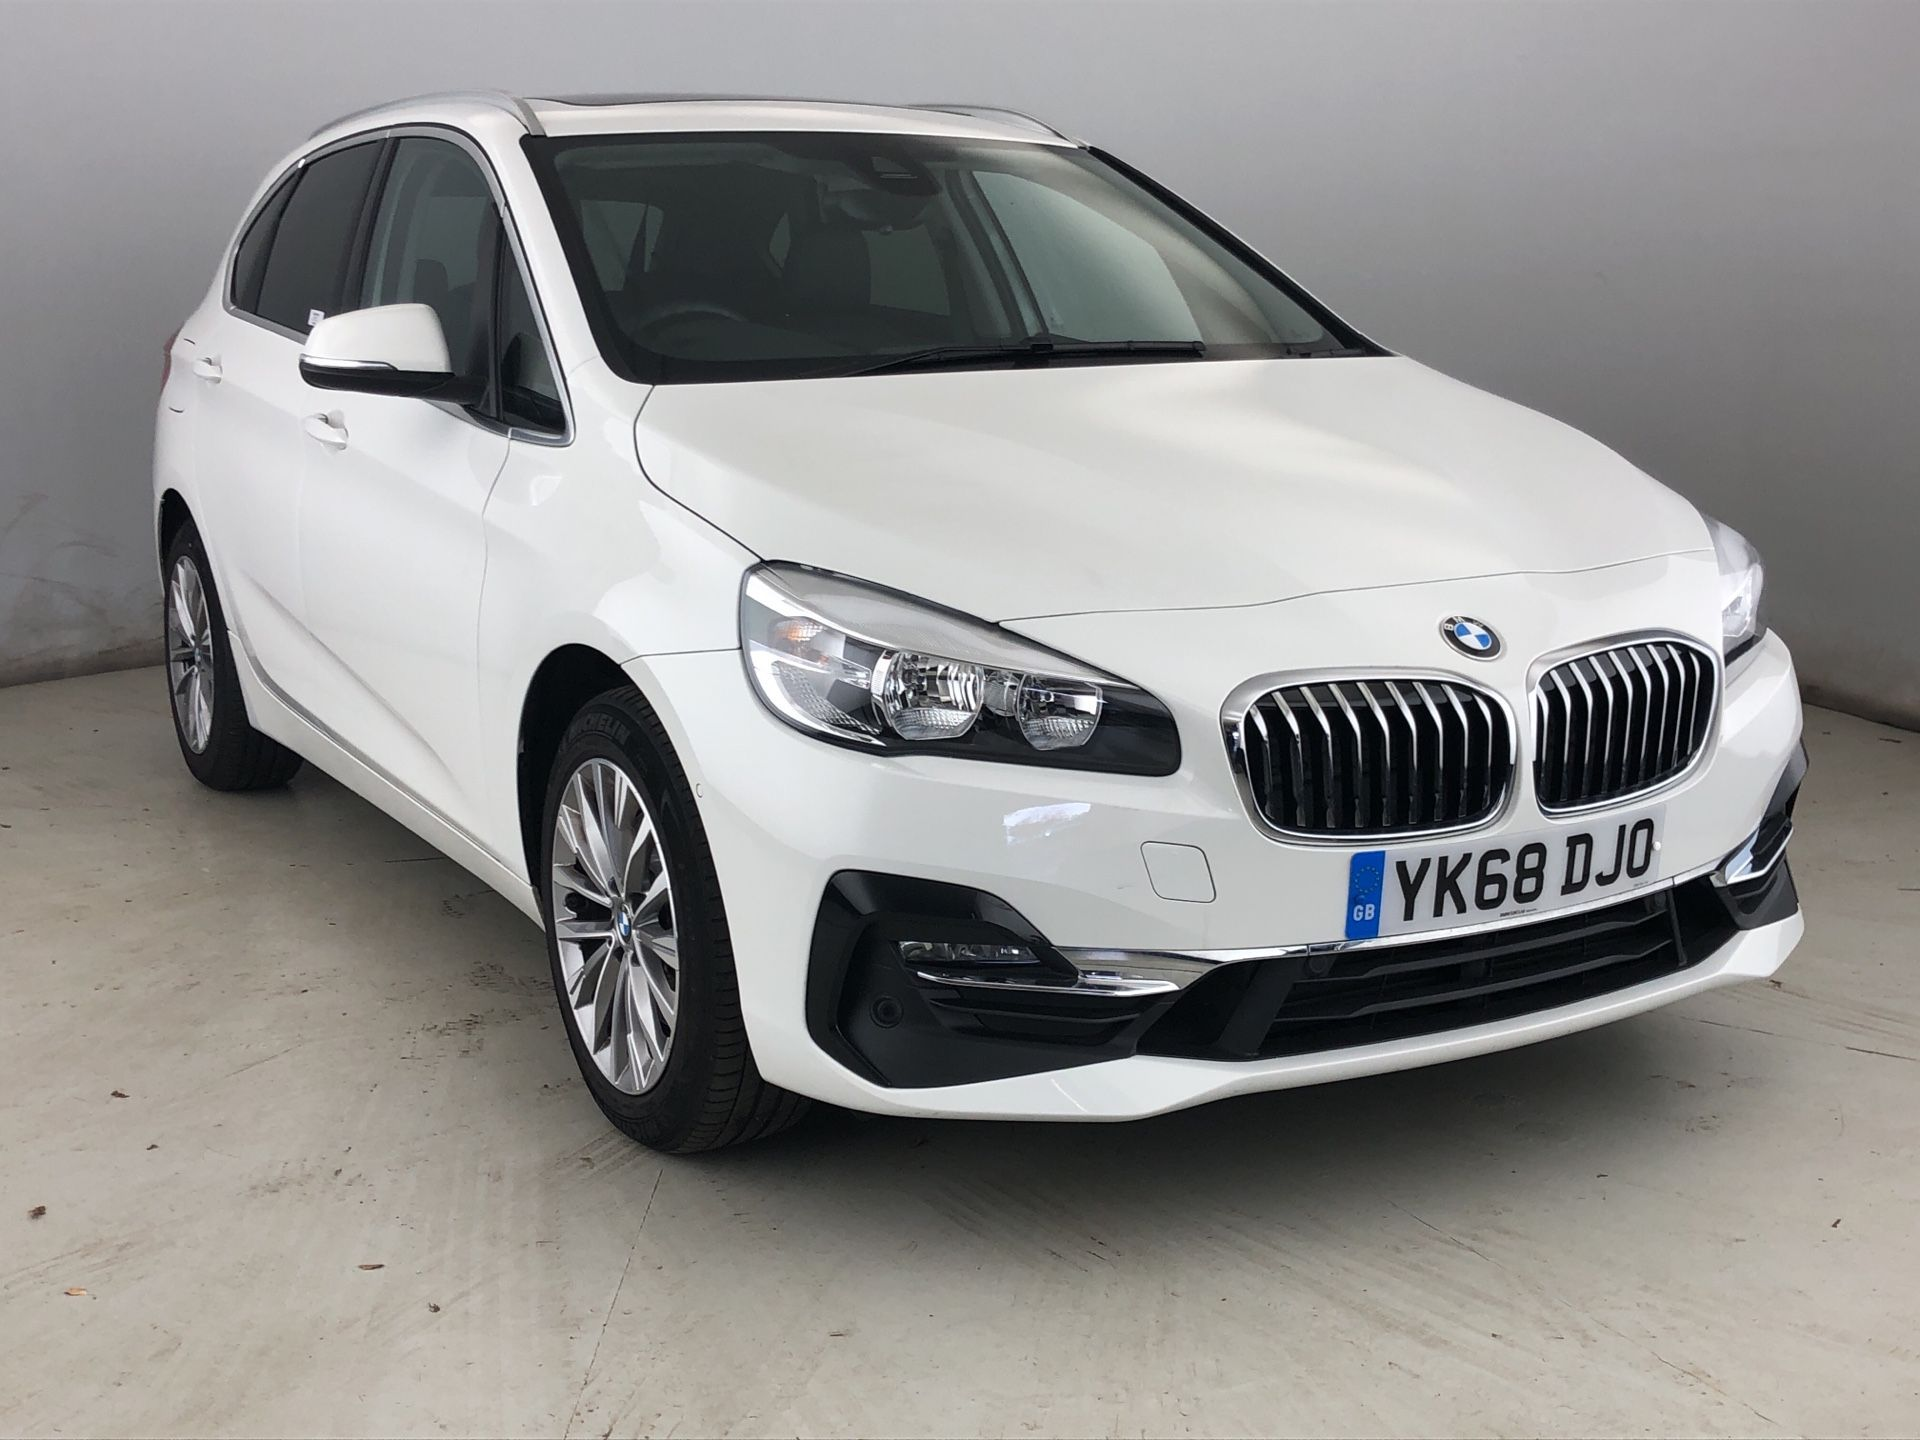 Image 1 - BMW 220d Luxury Active Tourer (YK68DJO)